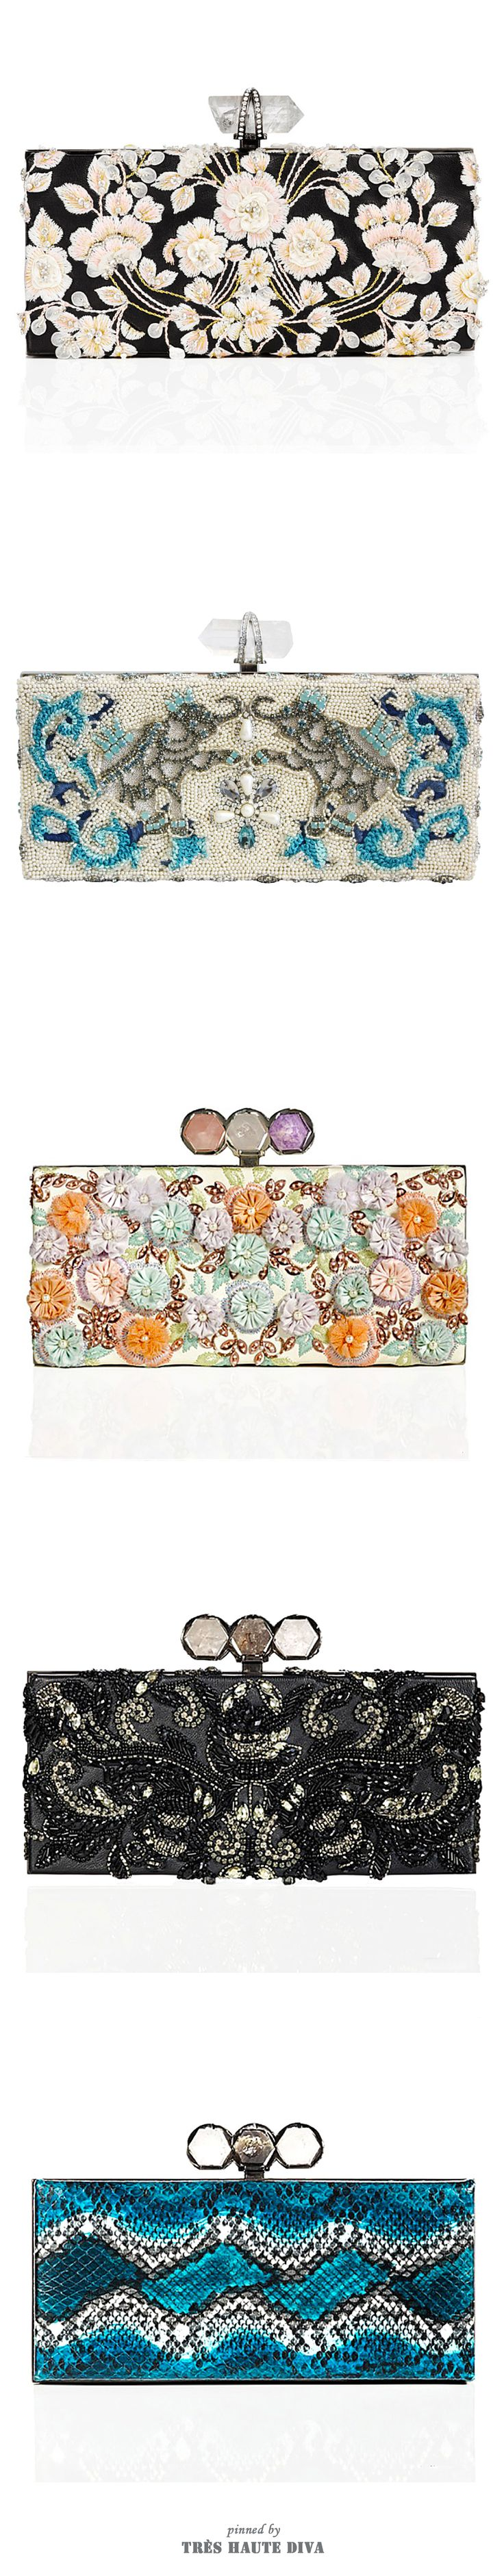 Marchesa ♔ Evening Clutches ♔ Resort 2015, 2013